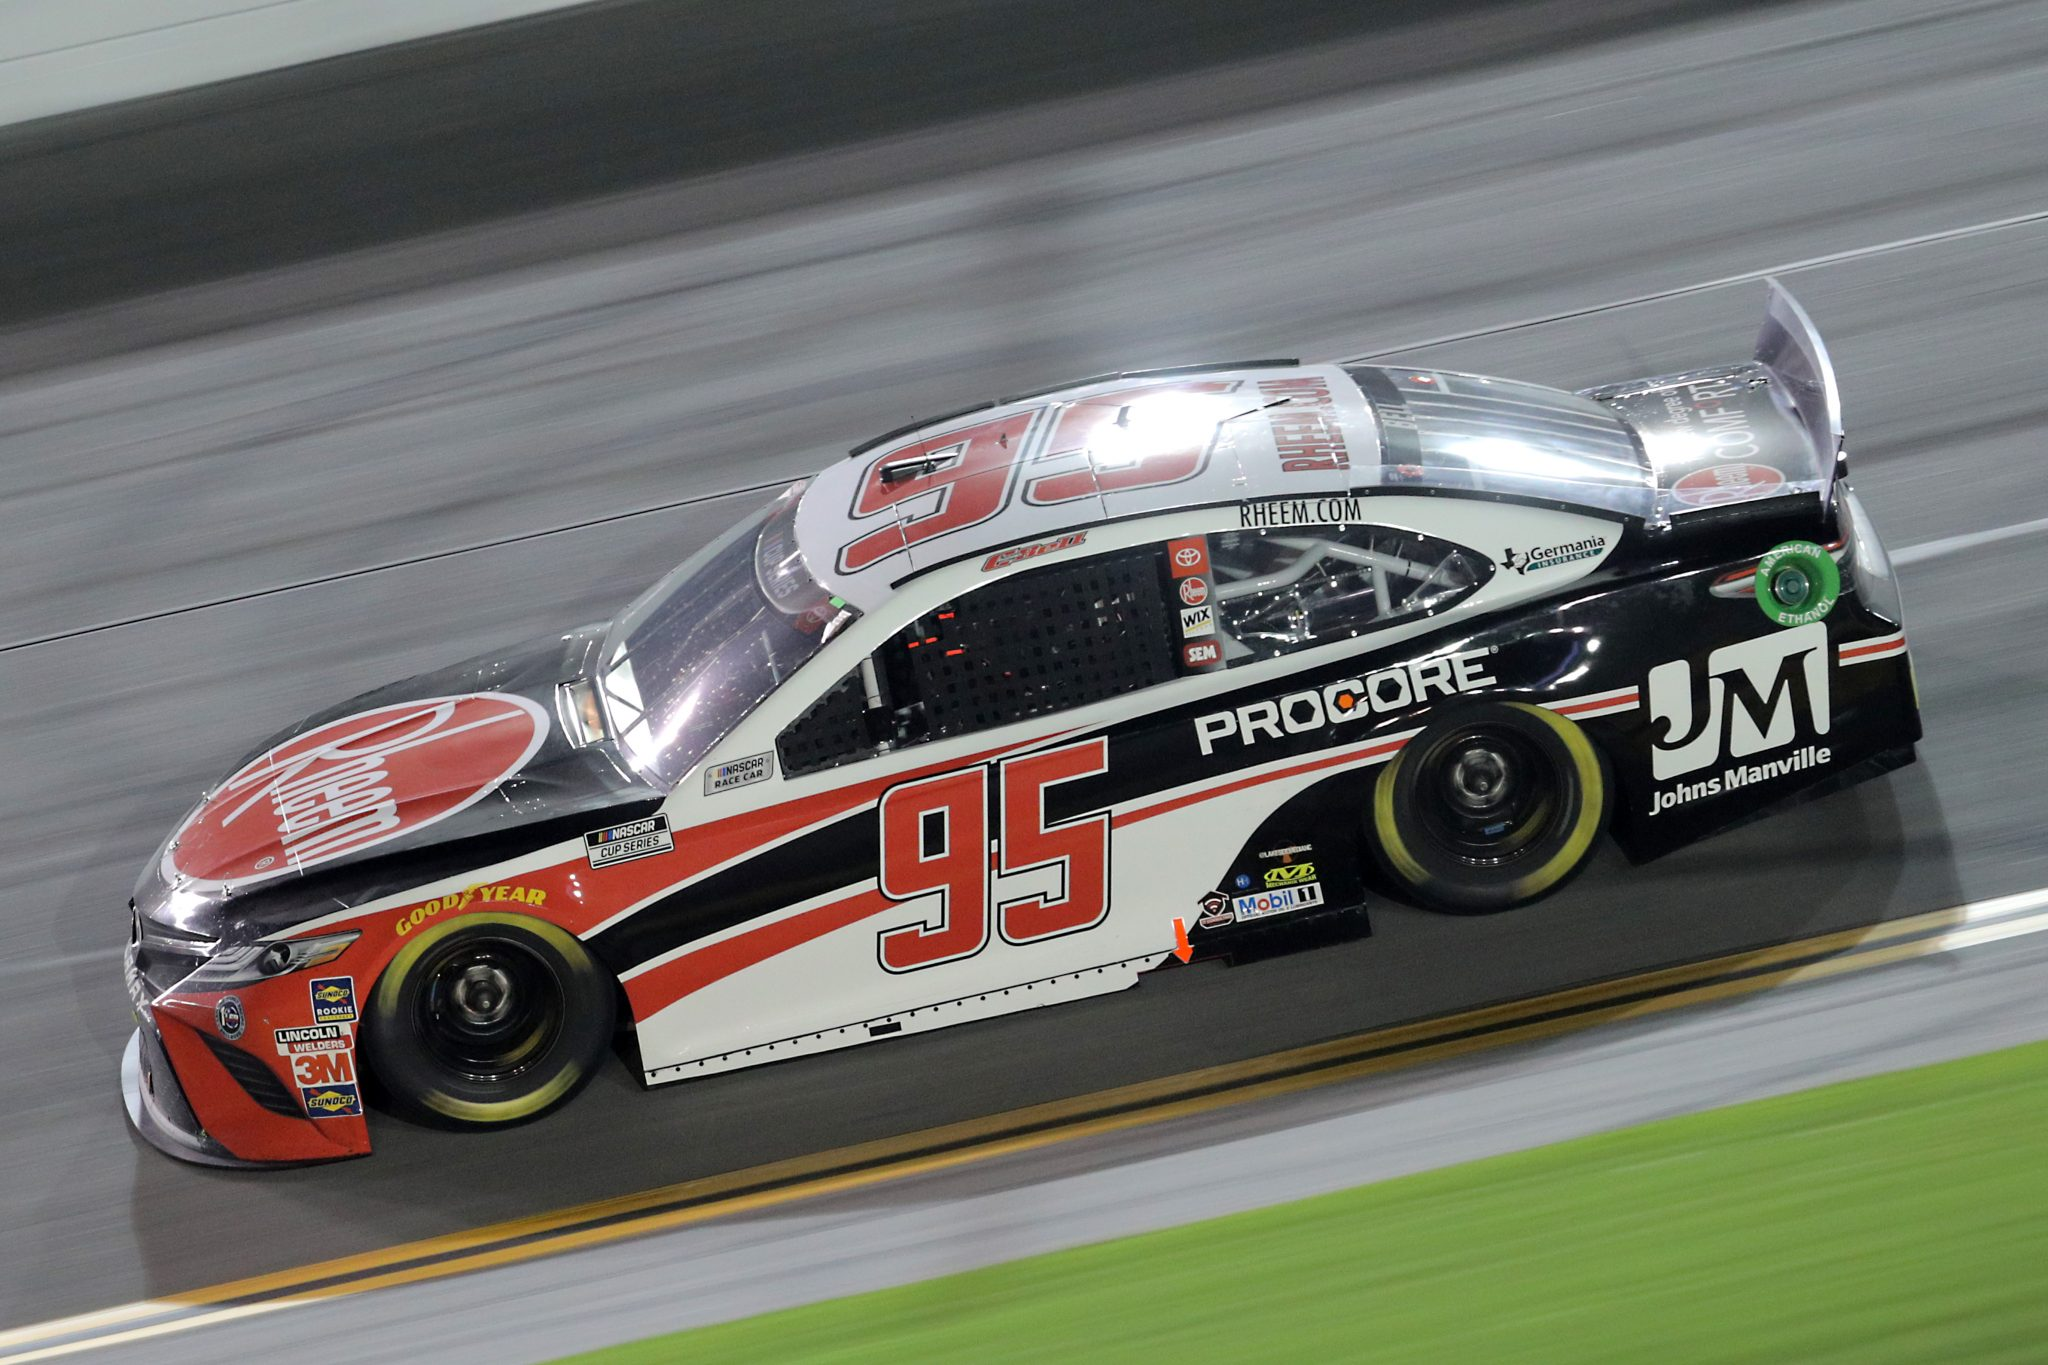 DAYTONA BEACH, FLORIDA - AUGUST 29: Christopher Bell, driver of the #95 Rheem/Johns Manville Toyota, races during the NASCAR Cup Series Coke Zero Sugar 400 at Daytona International Speedway on August 29, 2020 in Daytona Beach, Florida. (Photo by Chris Graythen/Getty Images) | Getty Images